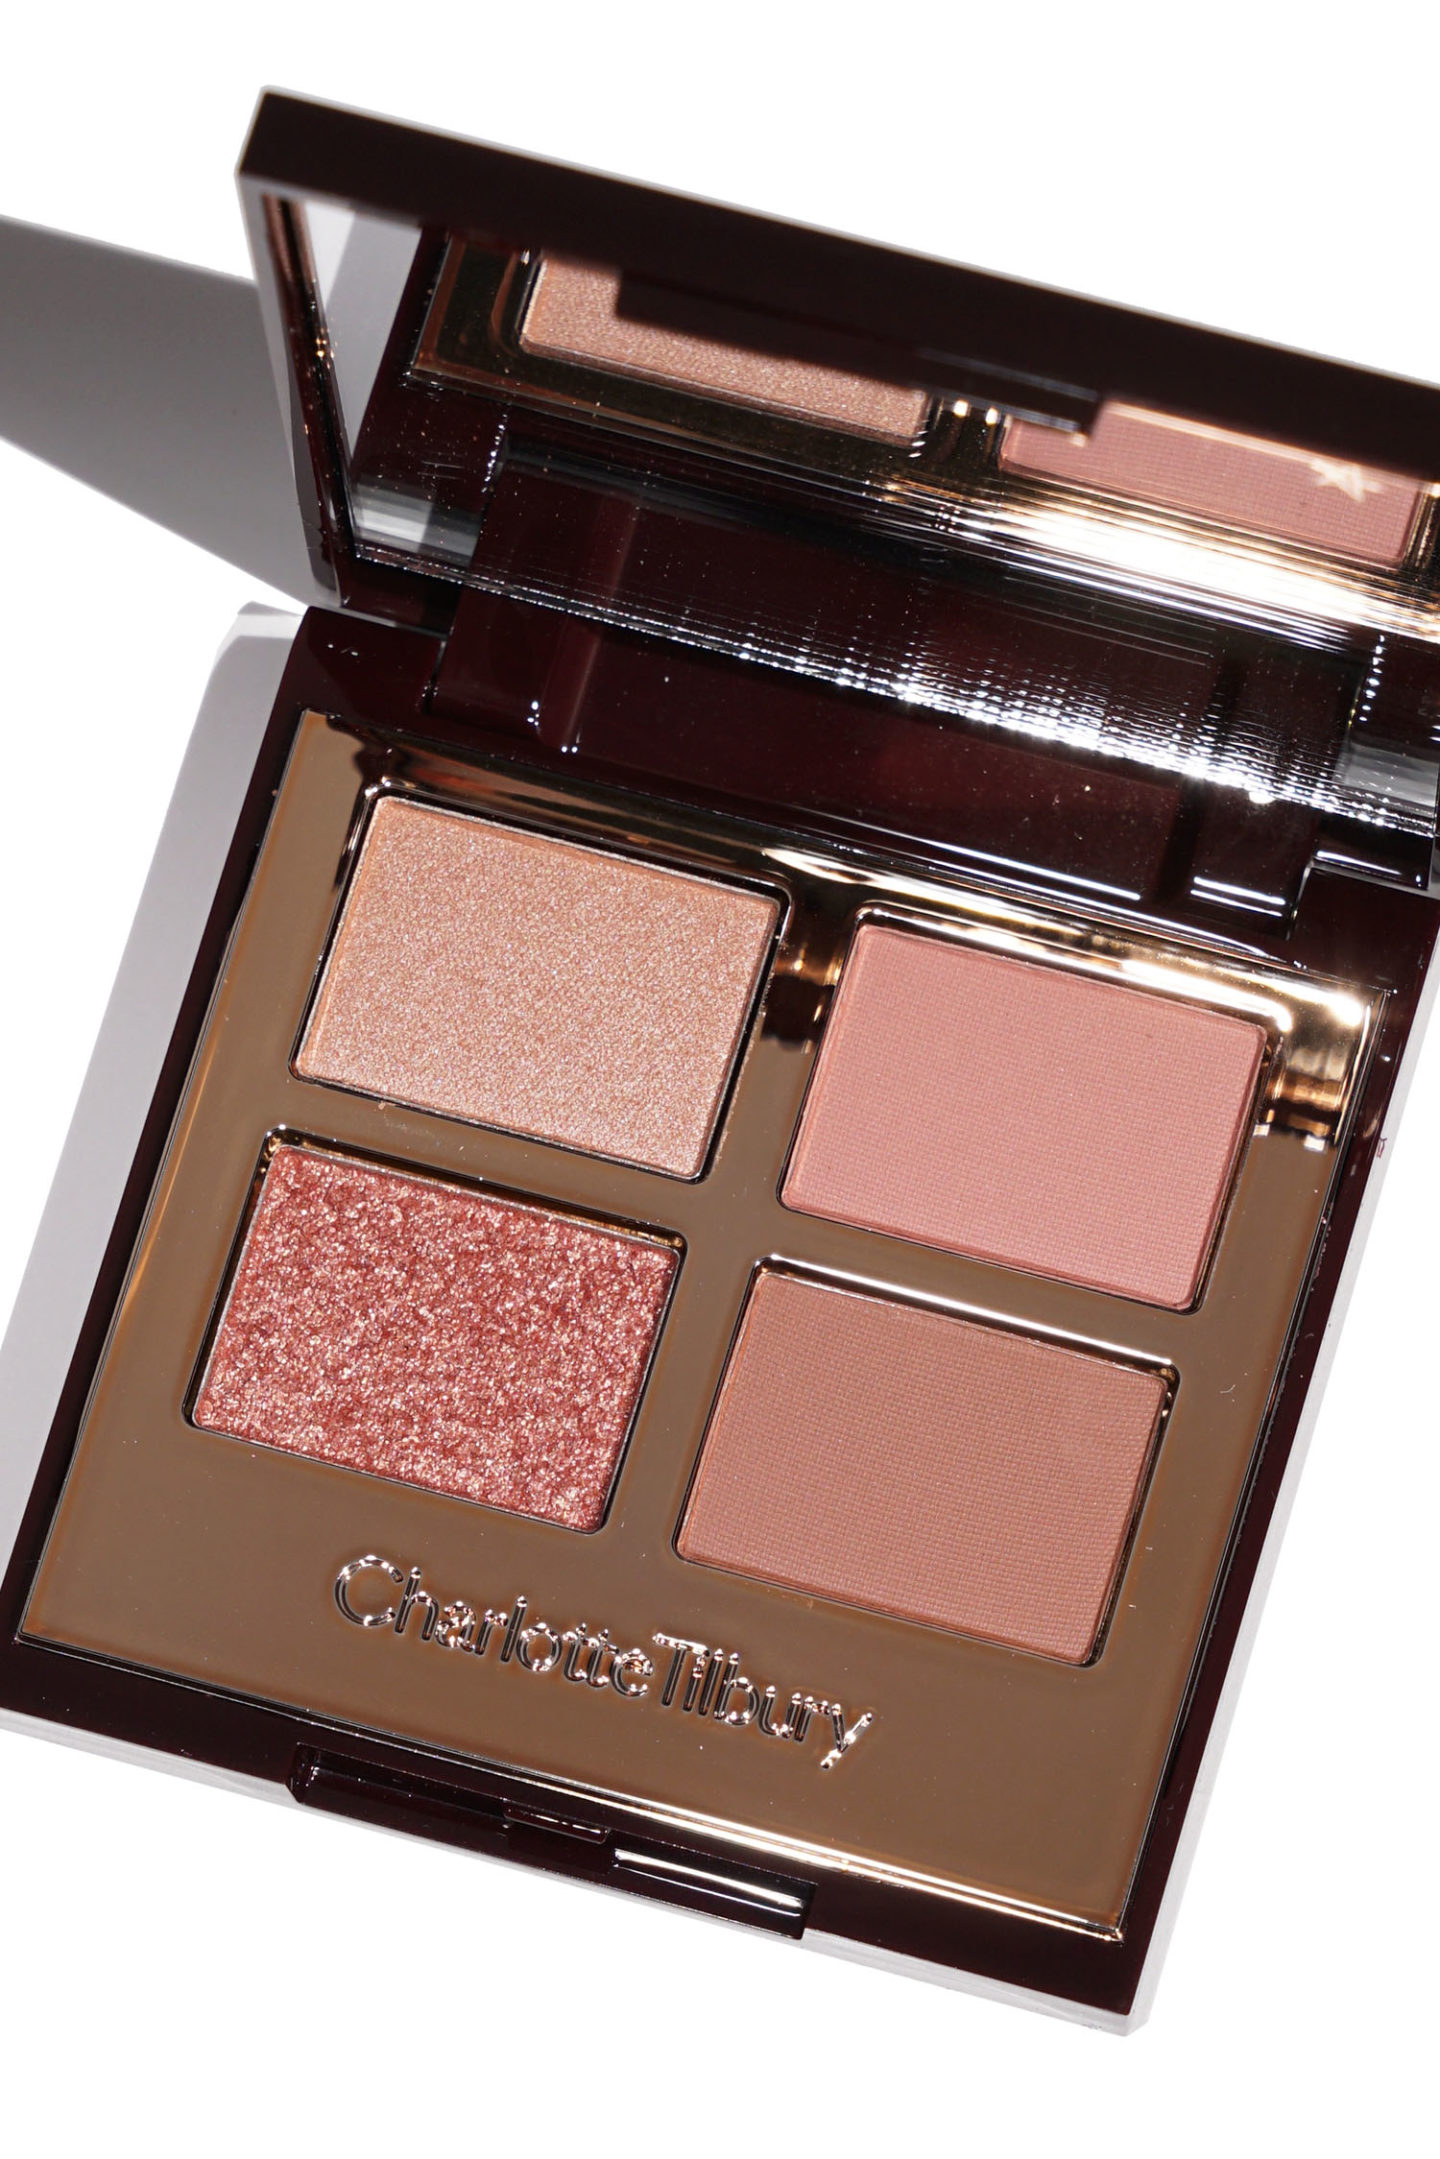 Charlotte Tilbury Pillow Talk Eyeshadow Palette Review | The Beauty Look Book